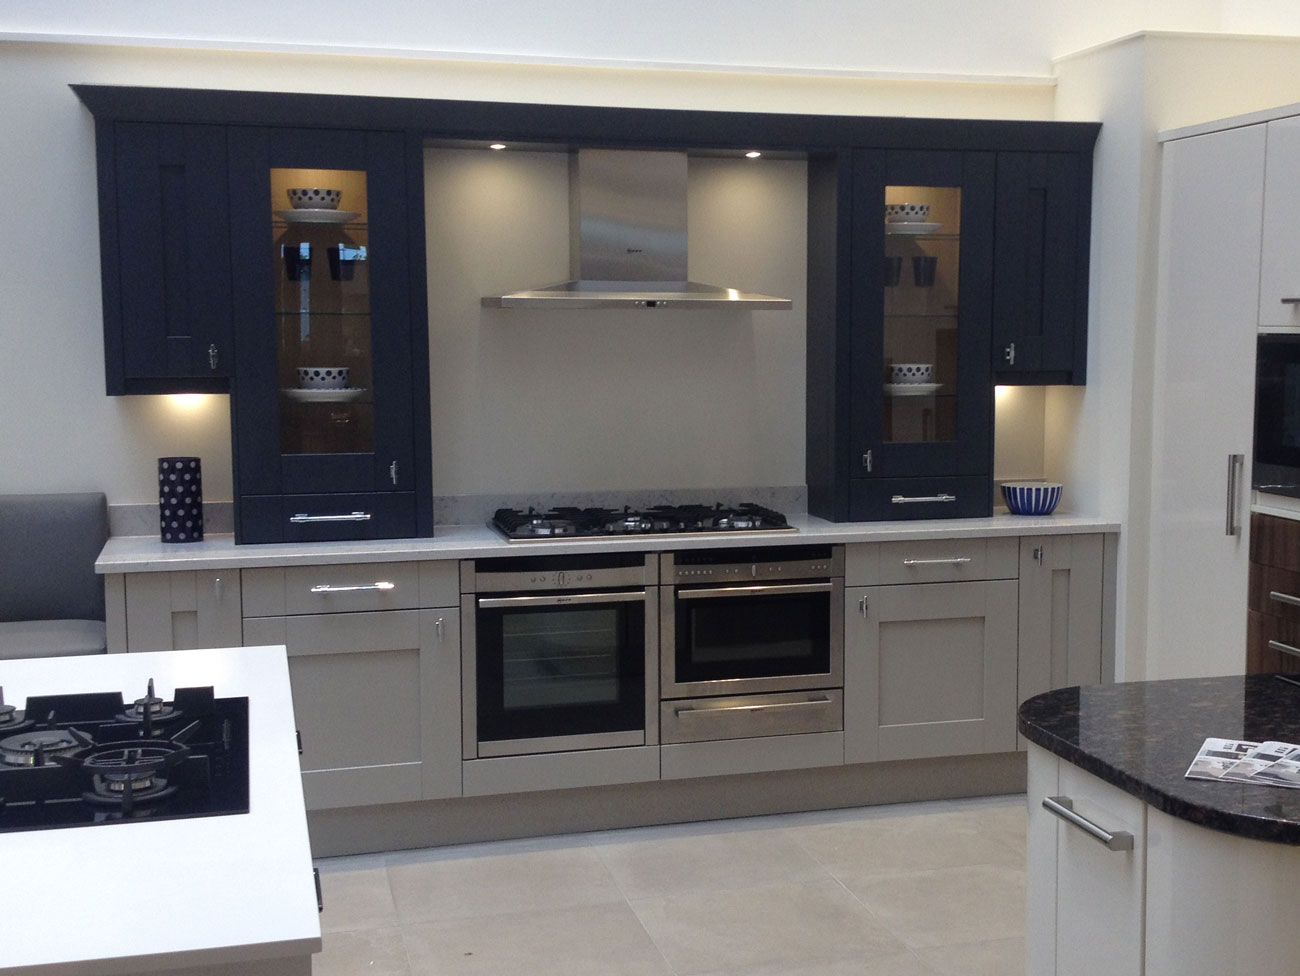 Alderley Display Clearance Kitchen